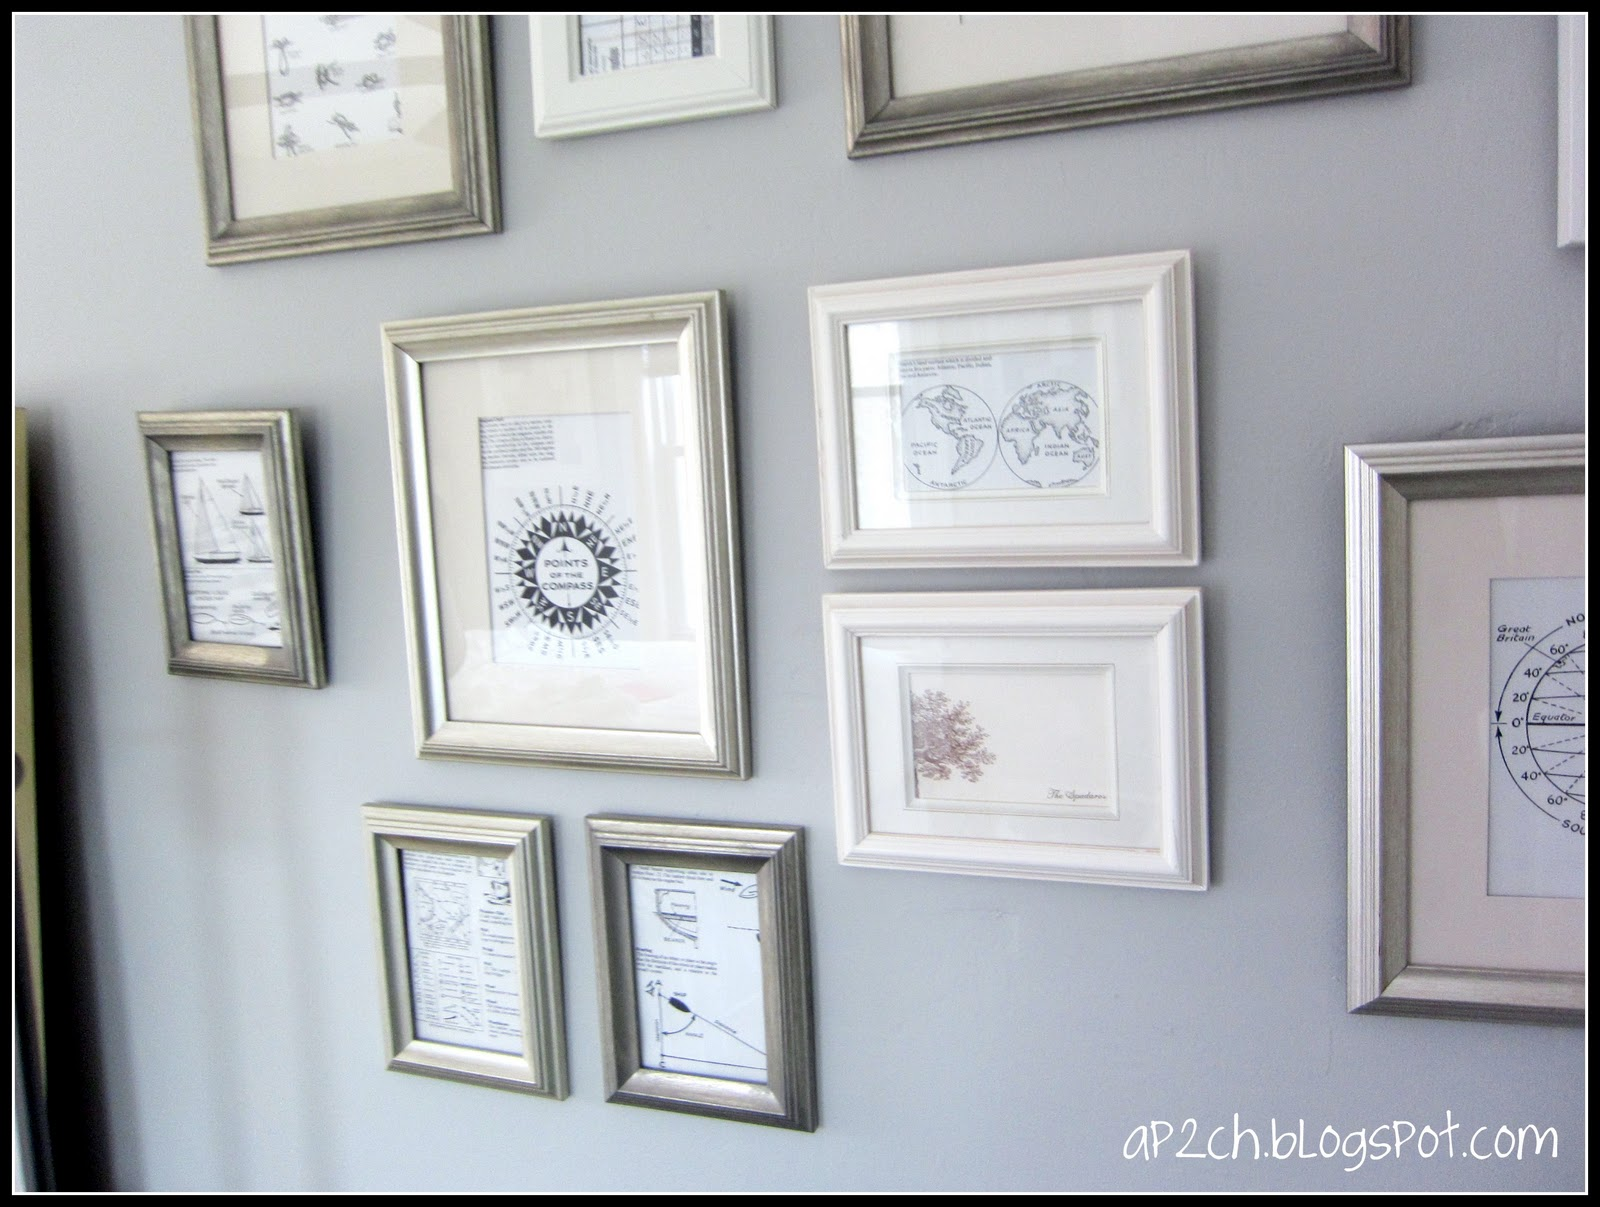 A place 2 call home: Completed Gallery Wall